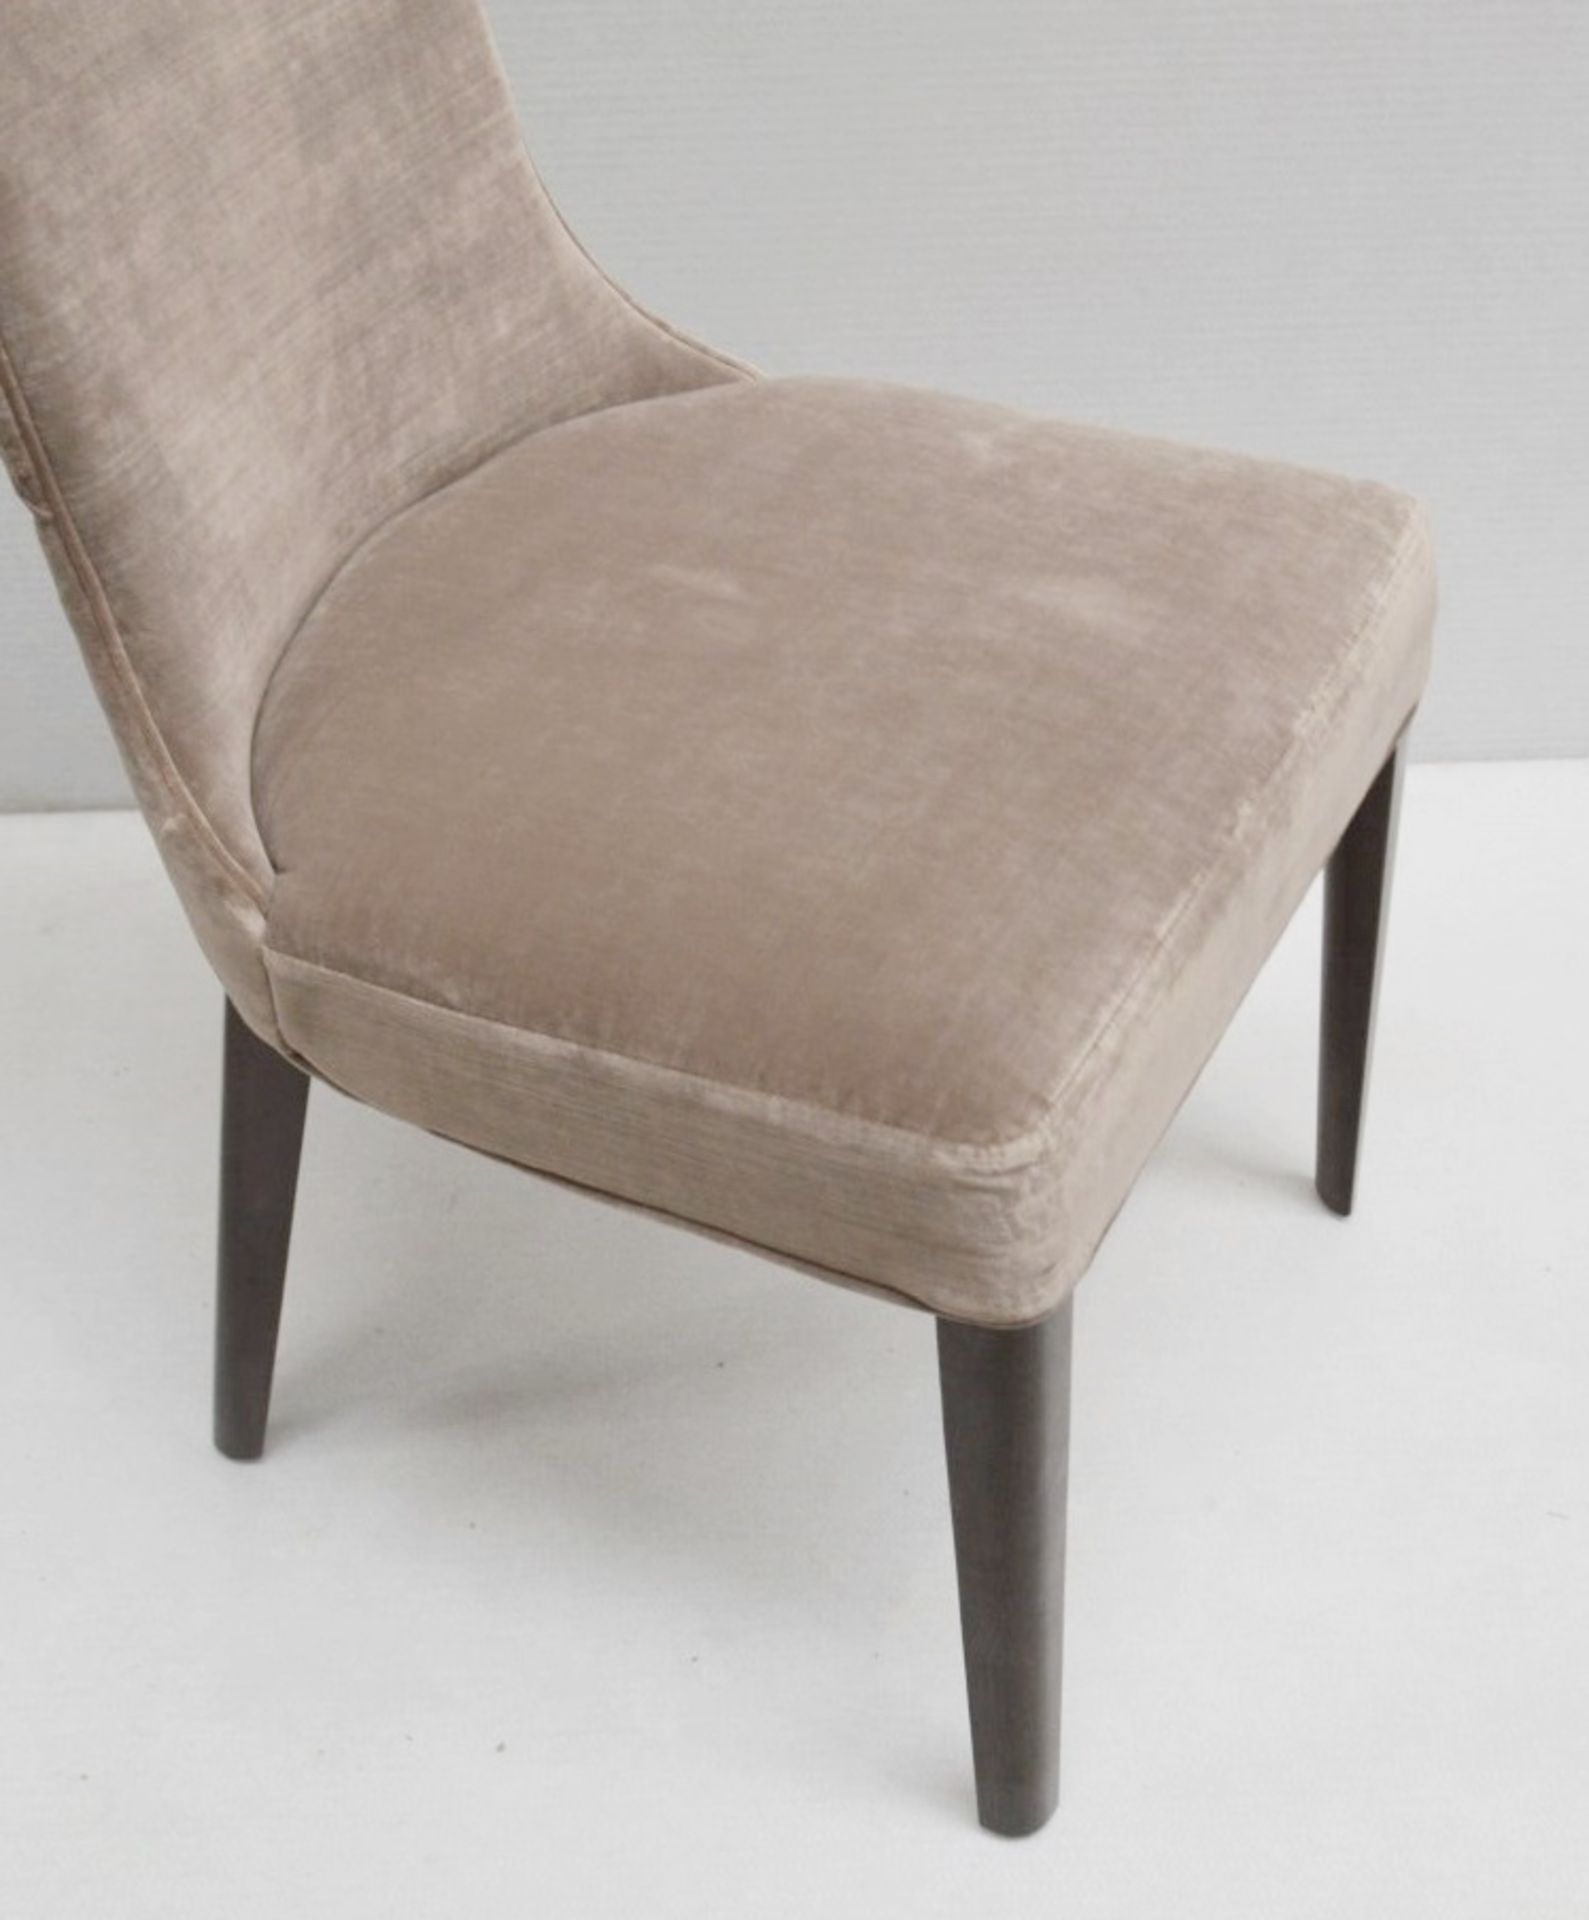 4 x GIORGIO Coliseum Velvet Upholstered Button Back Side Chairs With A Brazilian Rosewood Finish - - Image 5 of 11